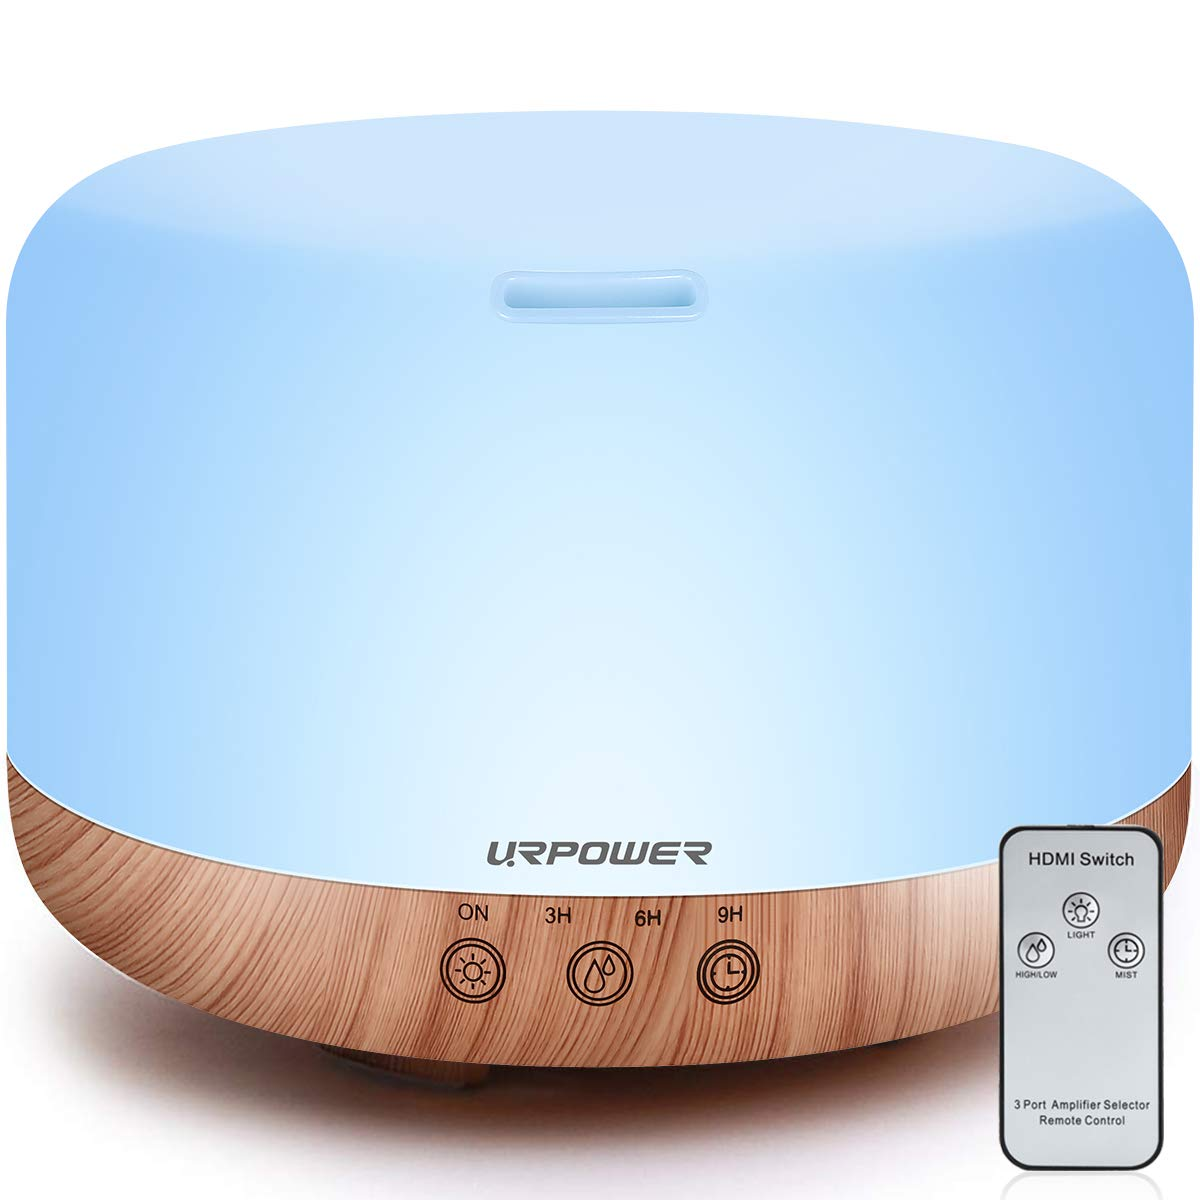 URPOWER 1000ml Essential Oil Diffuser Humidifiers Remote Control Ultrasonic Aromatherapy Diffusers Room Decor Running 20 Hours with Adjustable Mist Mode,Water-less Auto Shut-Off & 7 Color LED Lights by URPOWER